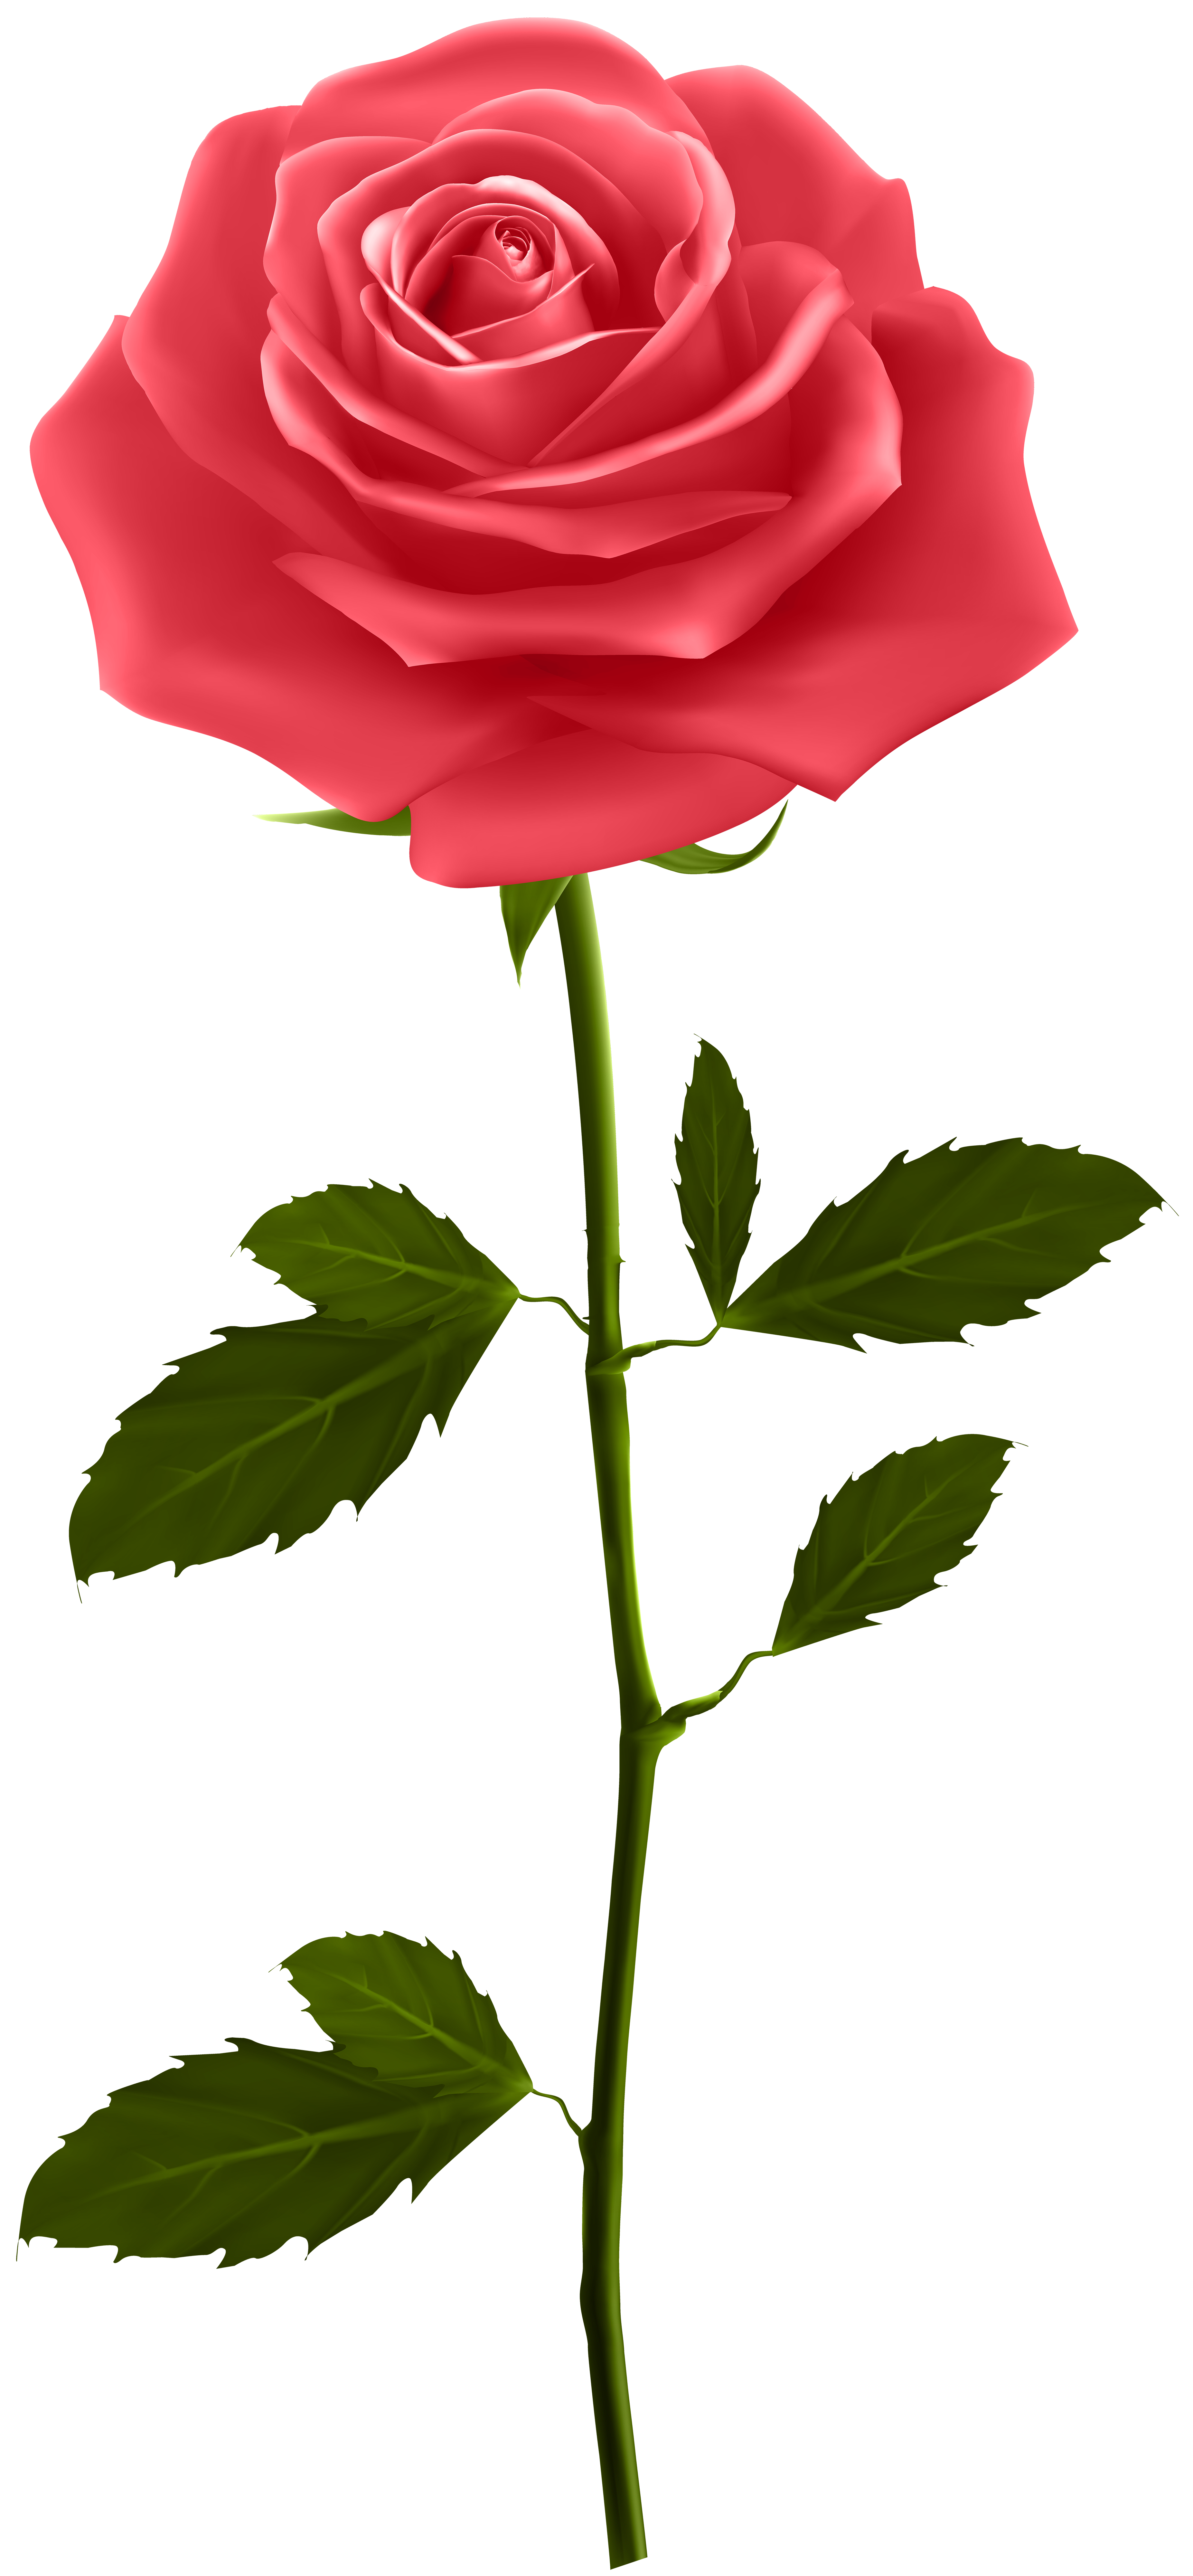 Red rose with stem. Clipart roses stick